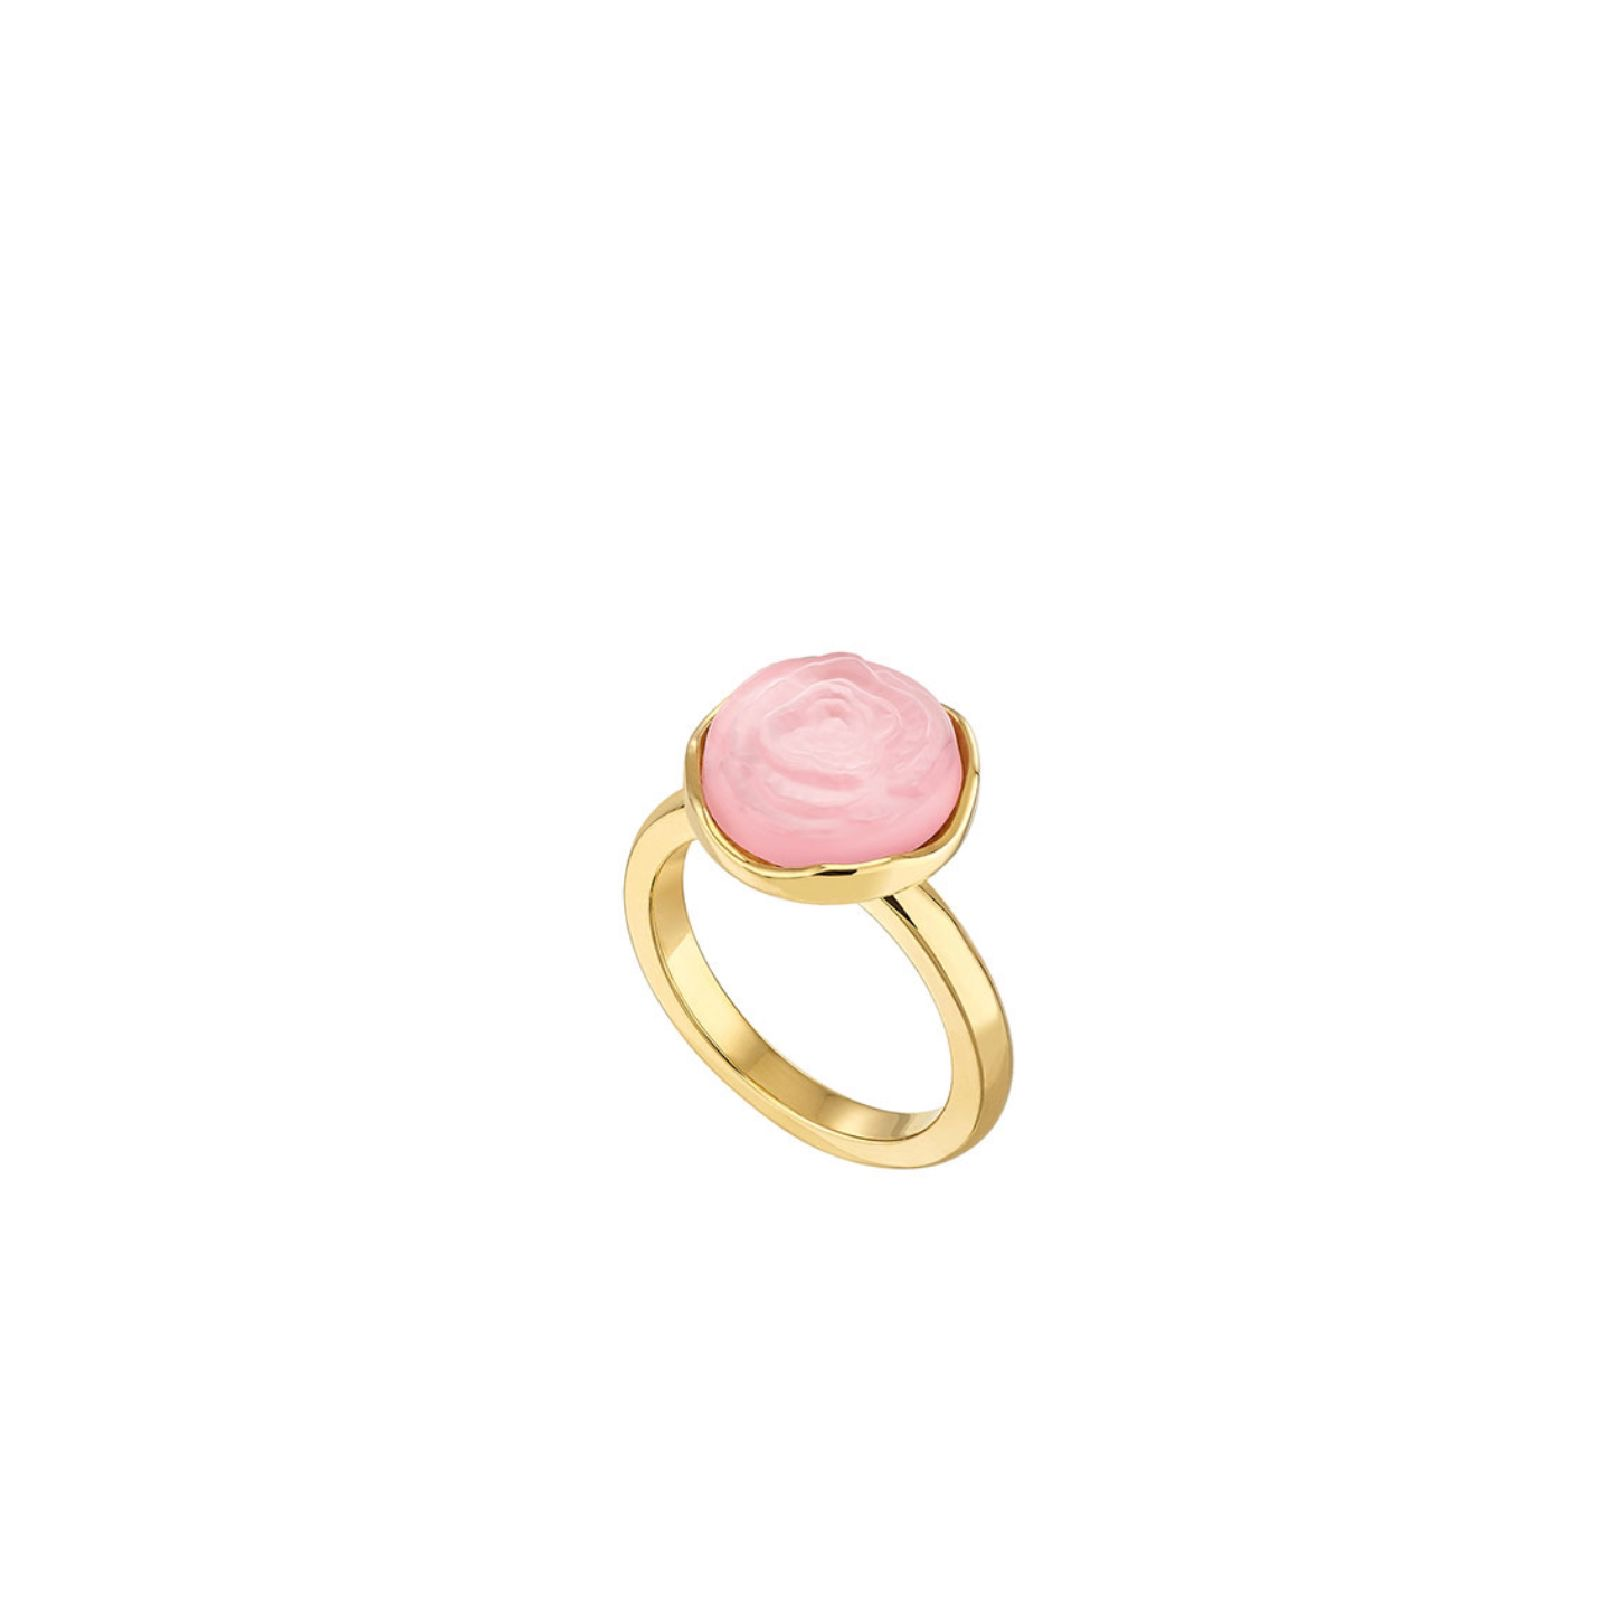 Lalique Pivoine ring